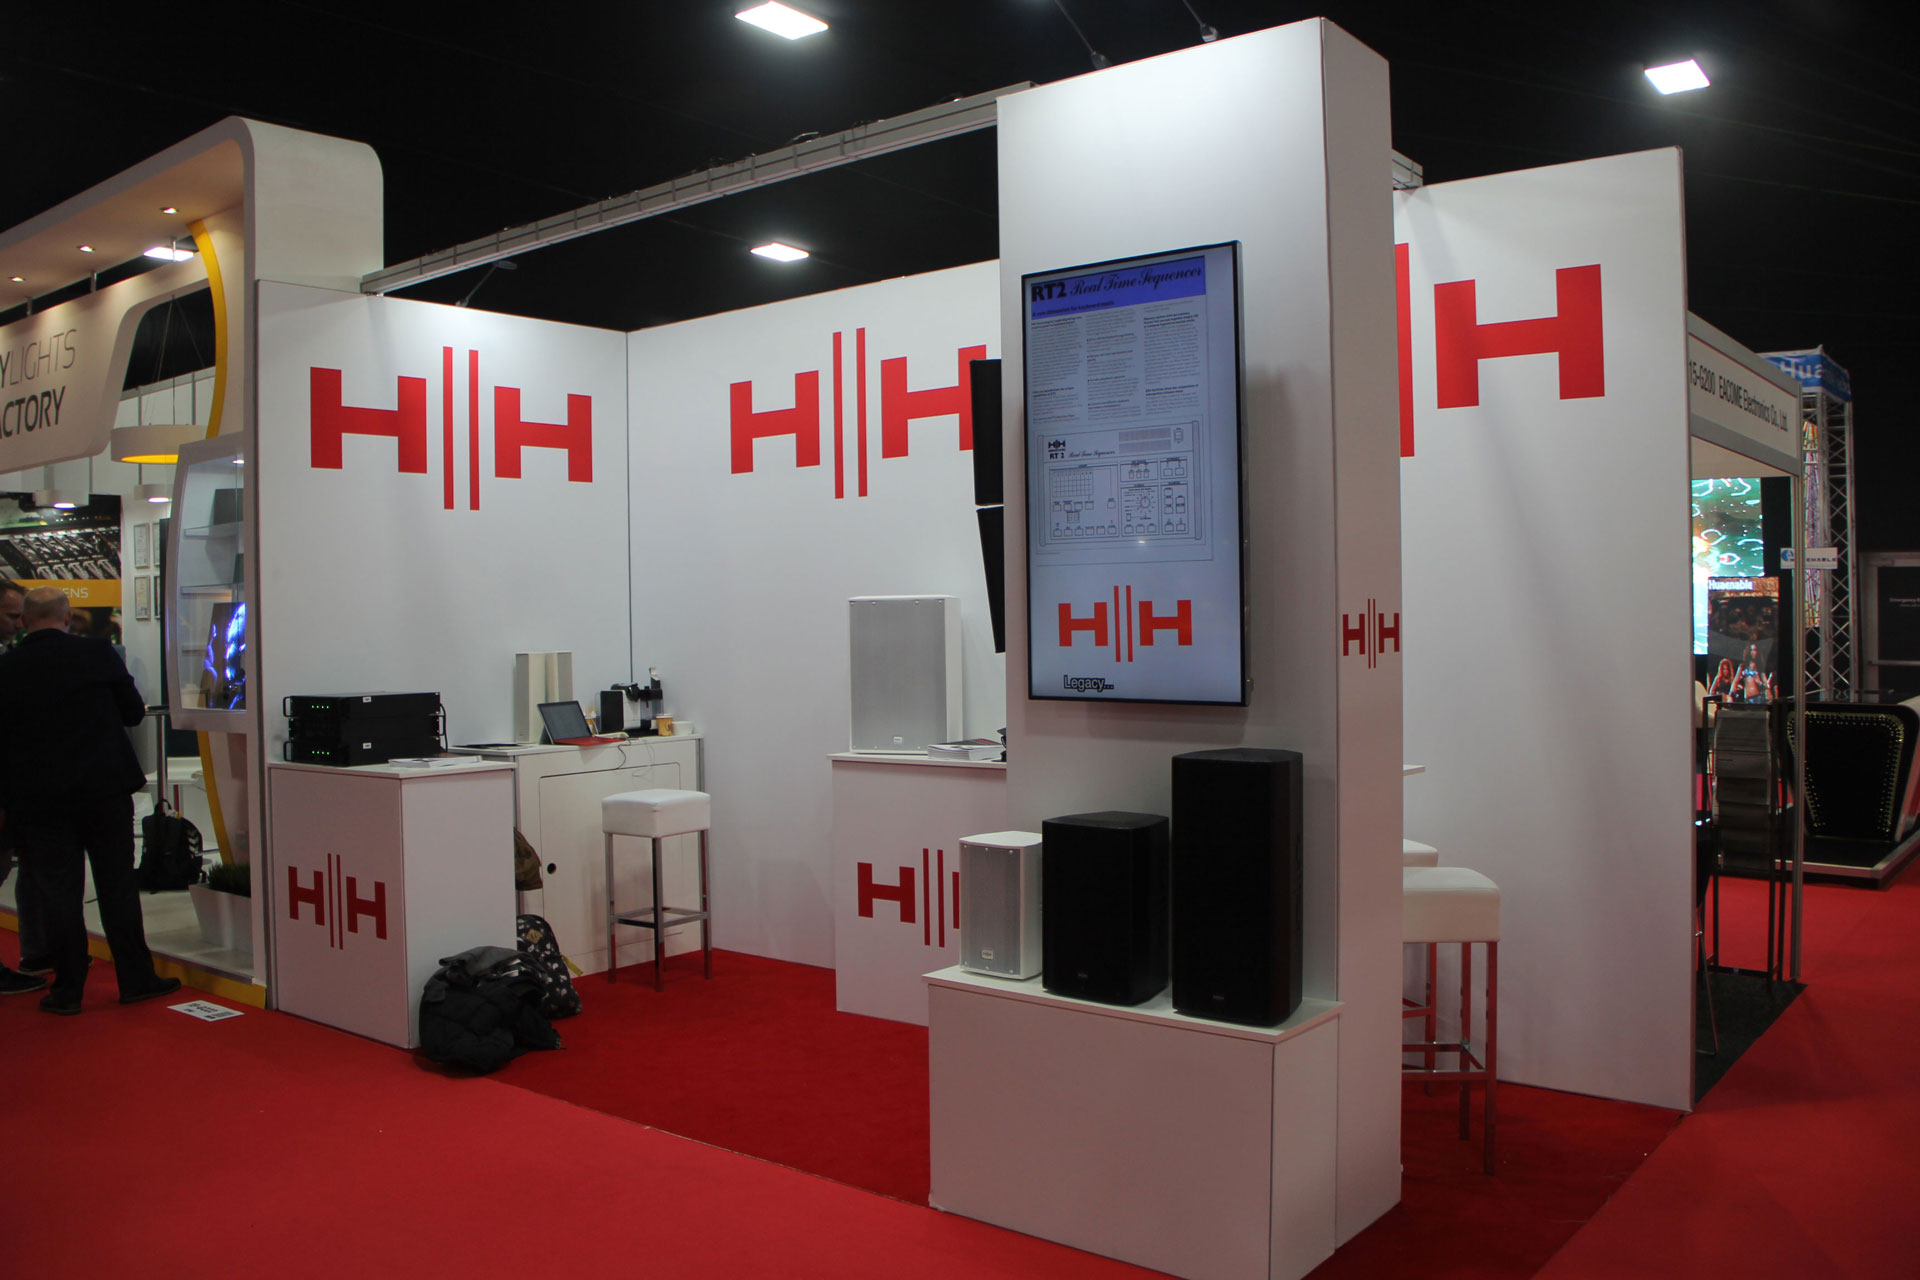 OneBigStar ISE HH Electronics Exhibition Stand Design & Build